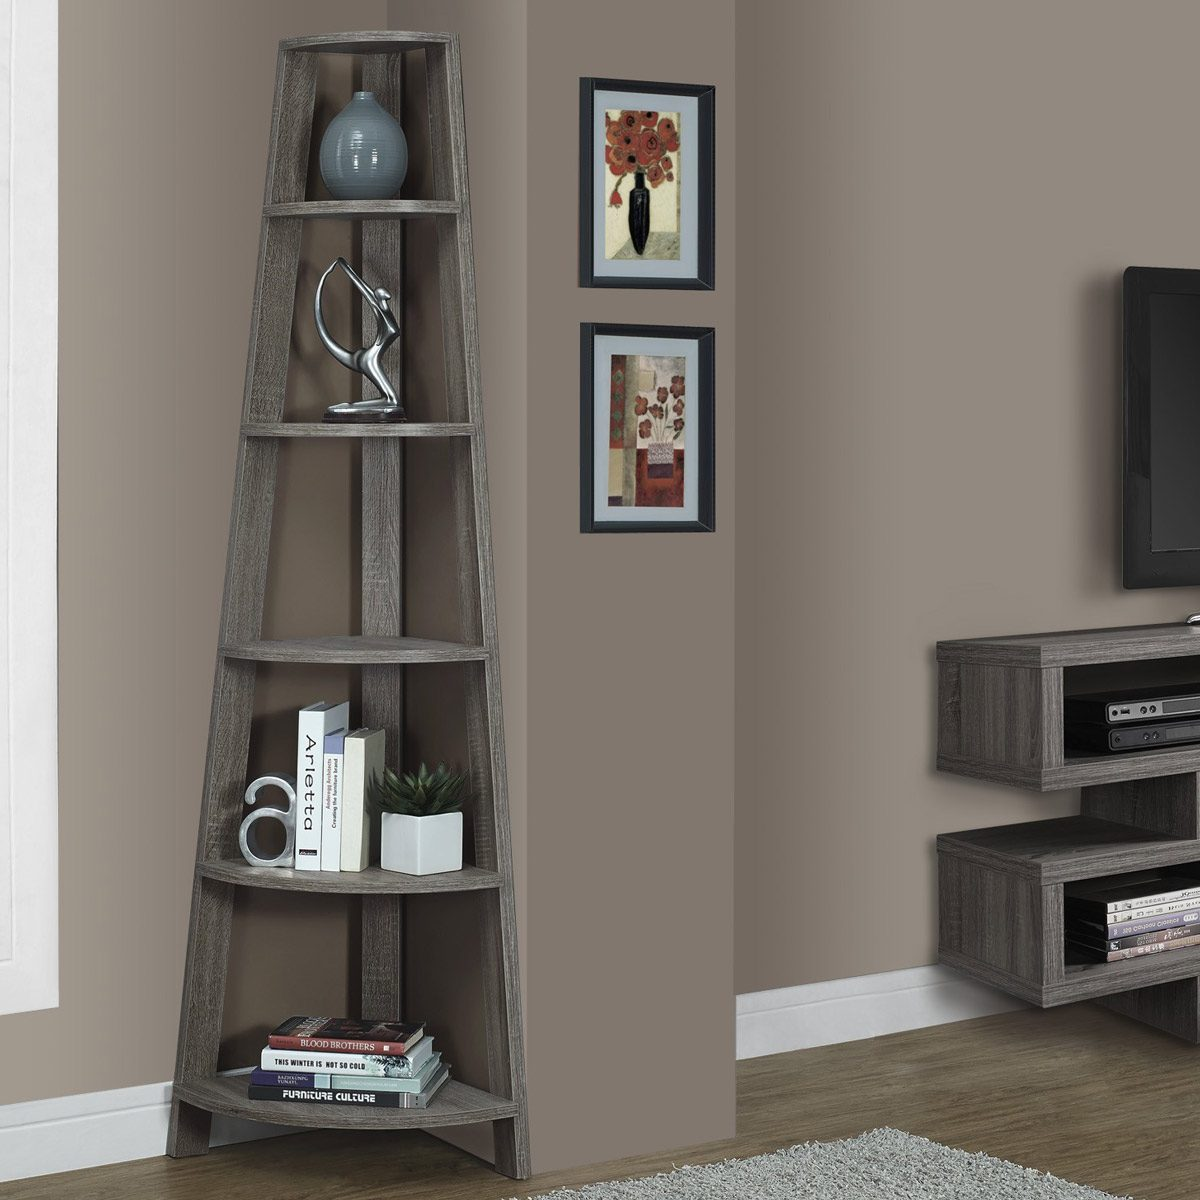 13 Great Paint Ideas For Your Living Room The Family Handyman